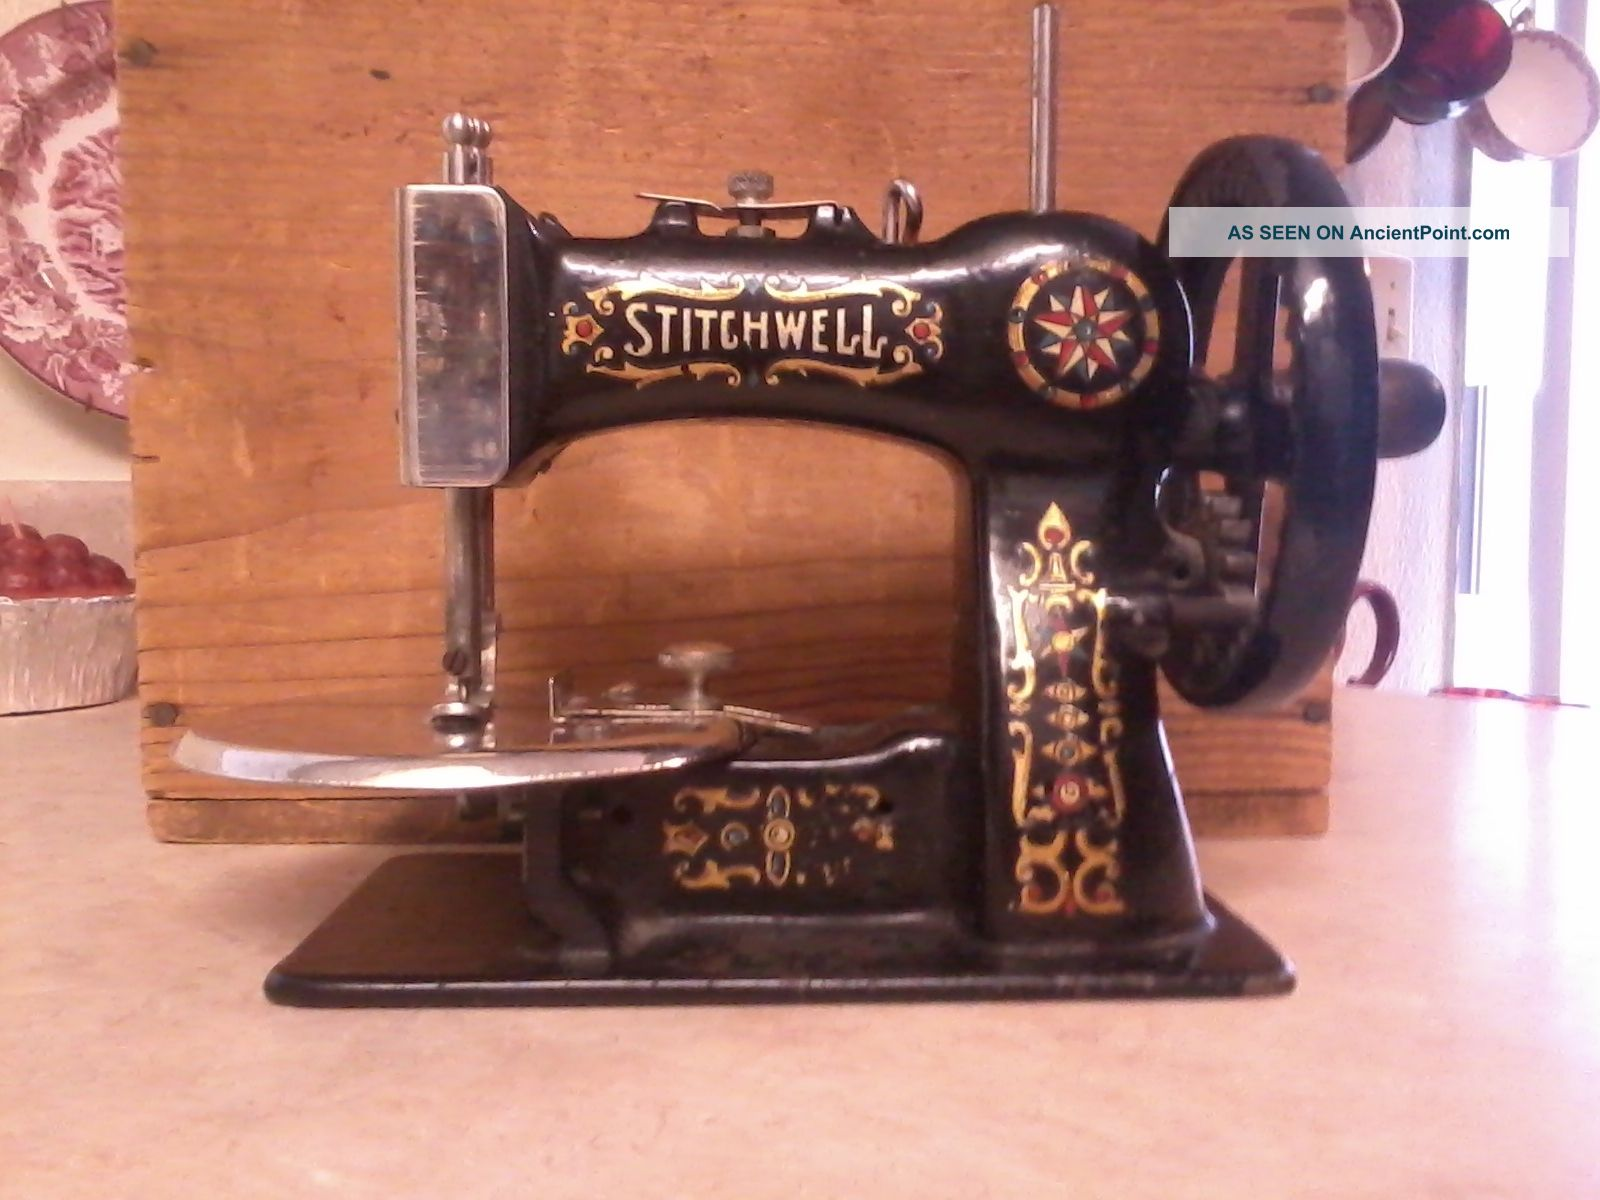 Stitchwell Antique Child ' S Sewing Machine - Wooden Box,  Clamp,  Spool Works Sewing Machines photo